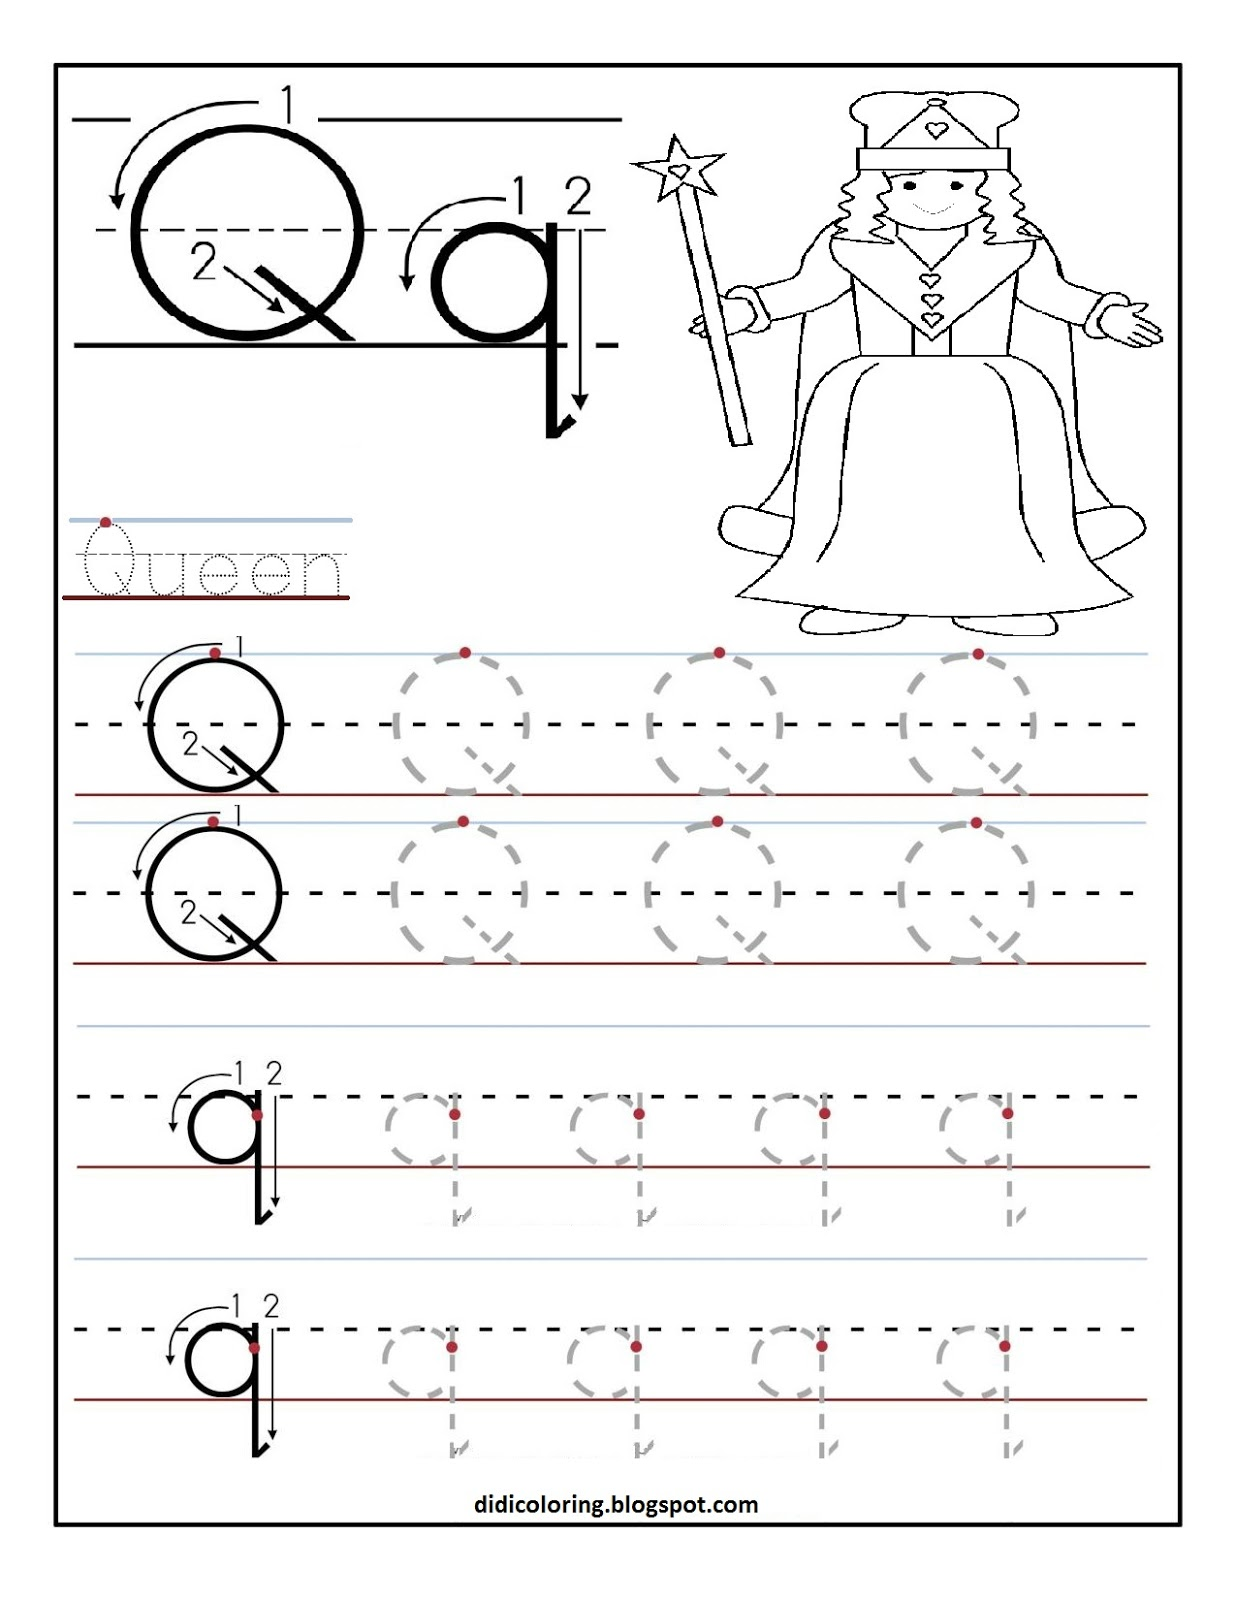 Free Printable Tracing Worksheet St For Your Kid To